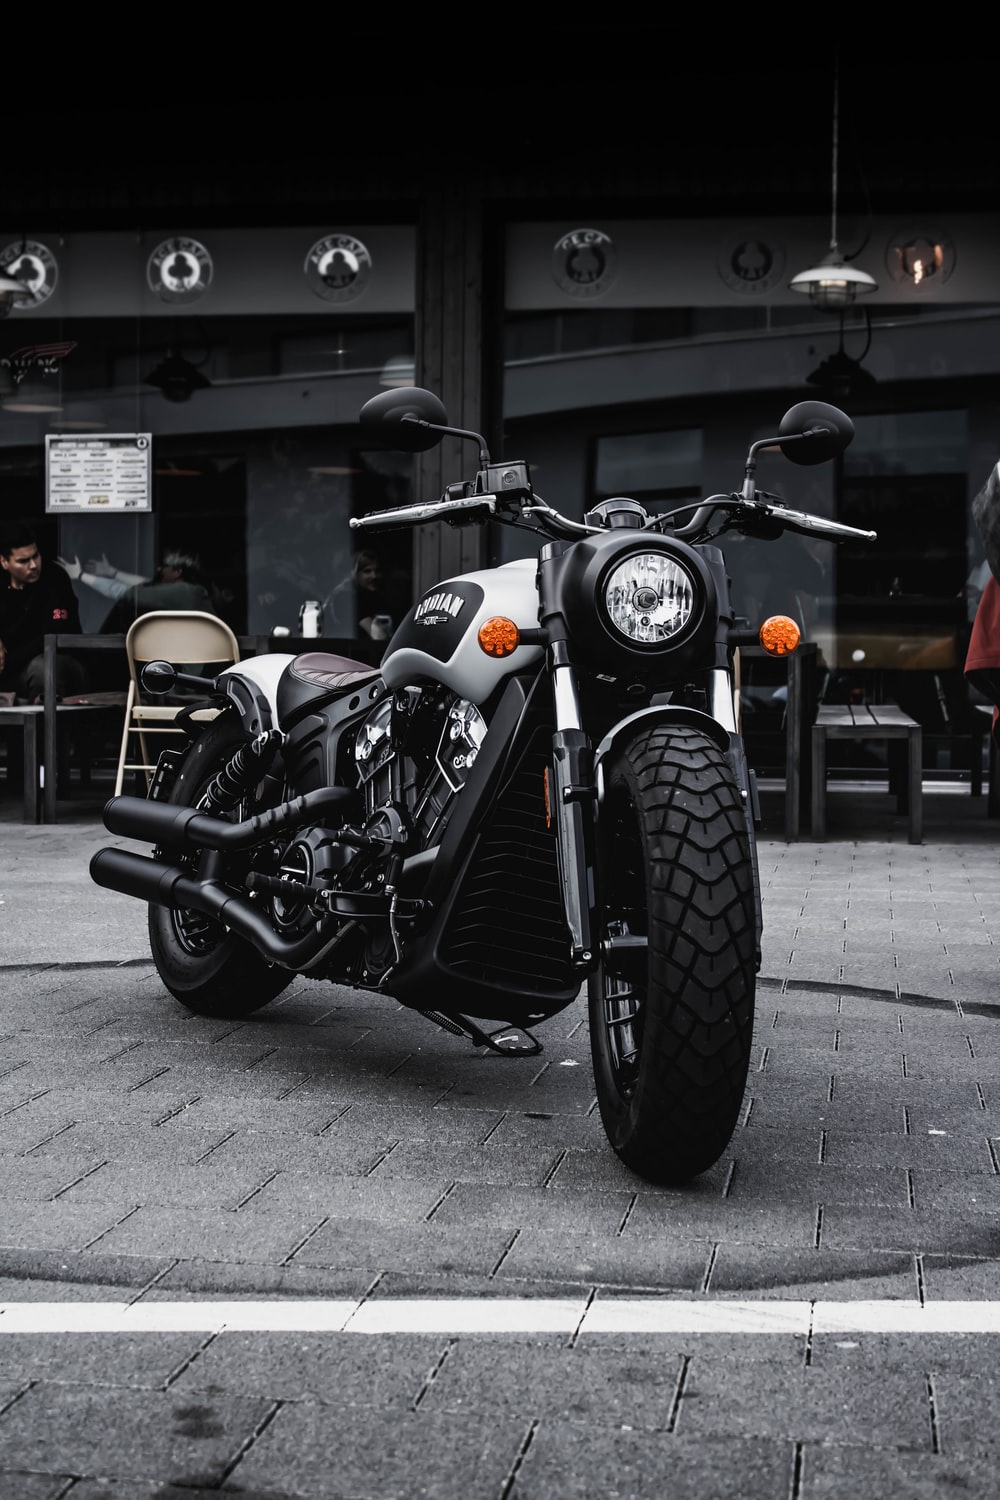 black and gray cruiser motorcycle parked beside black concrete building